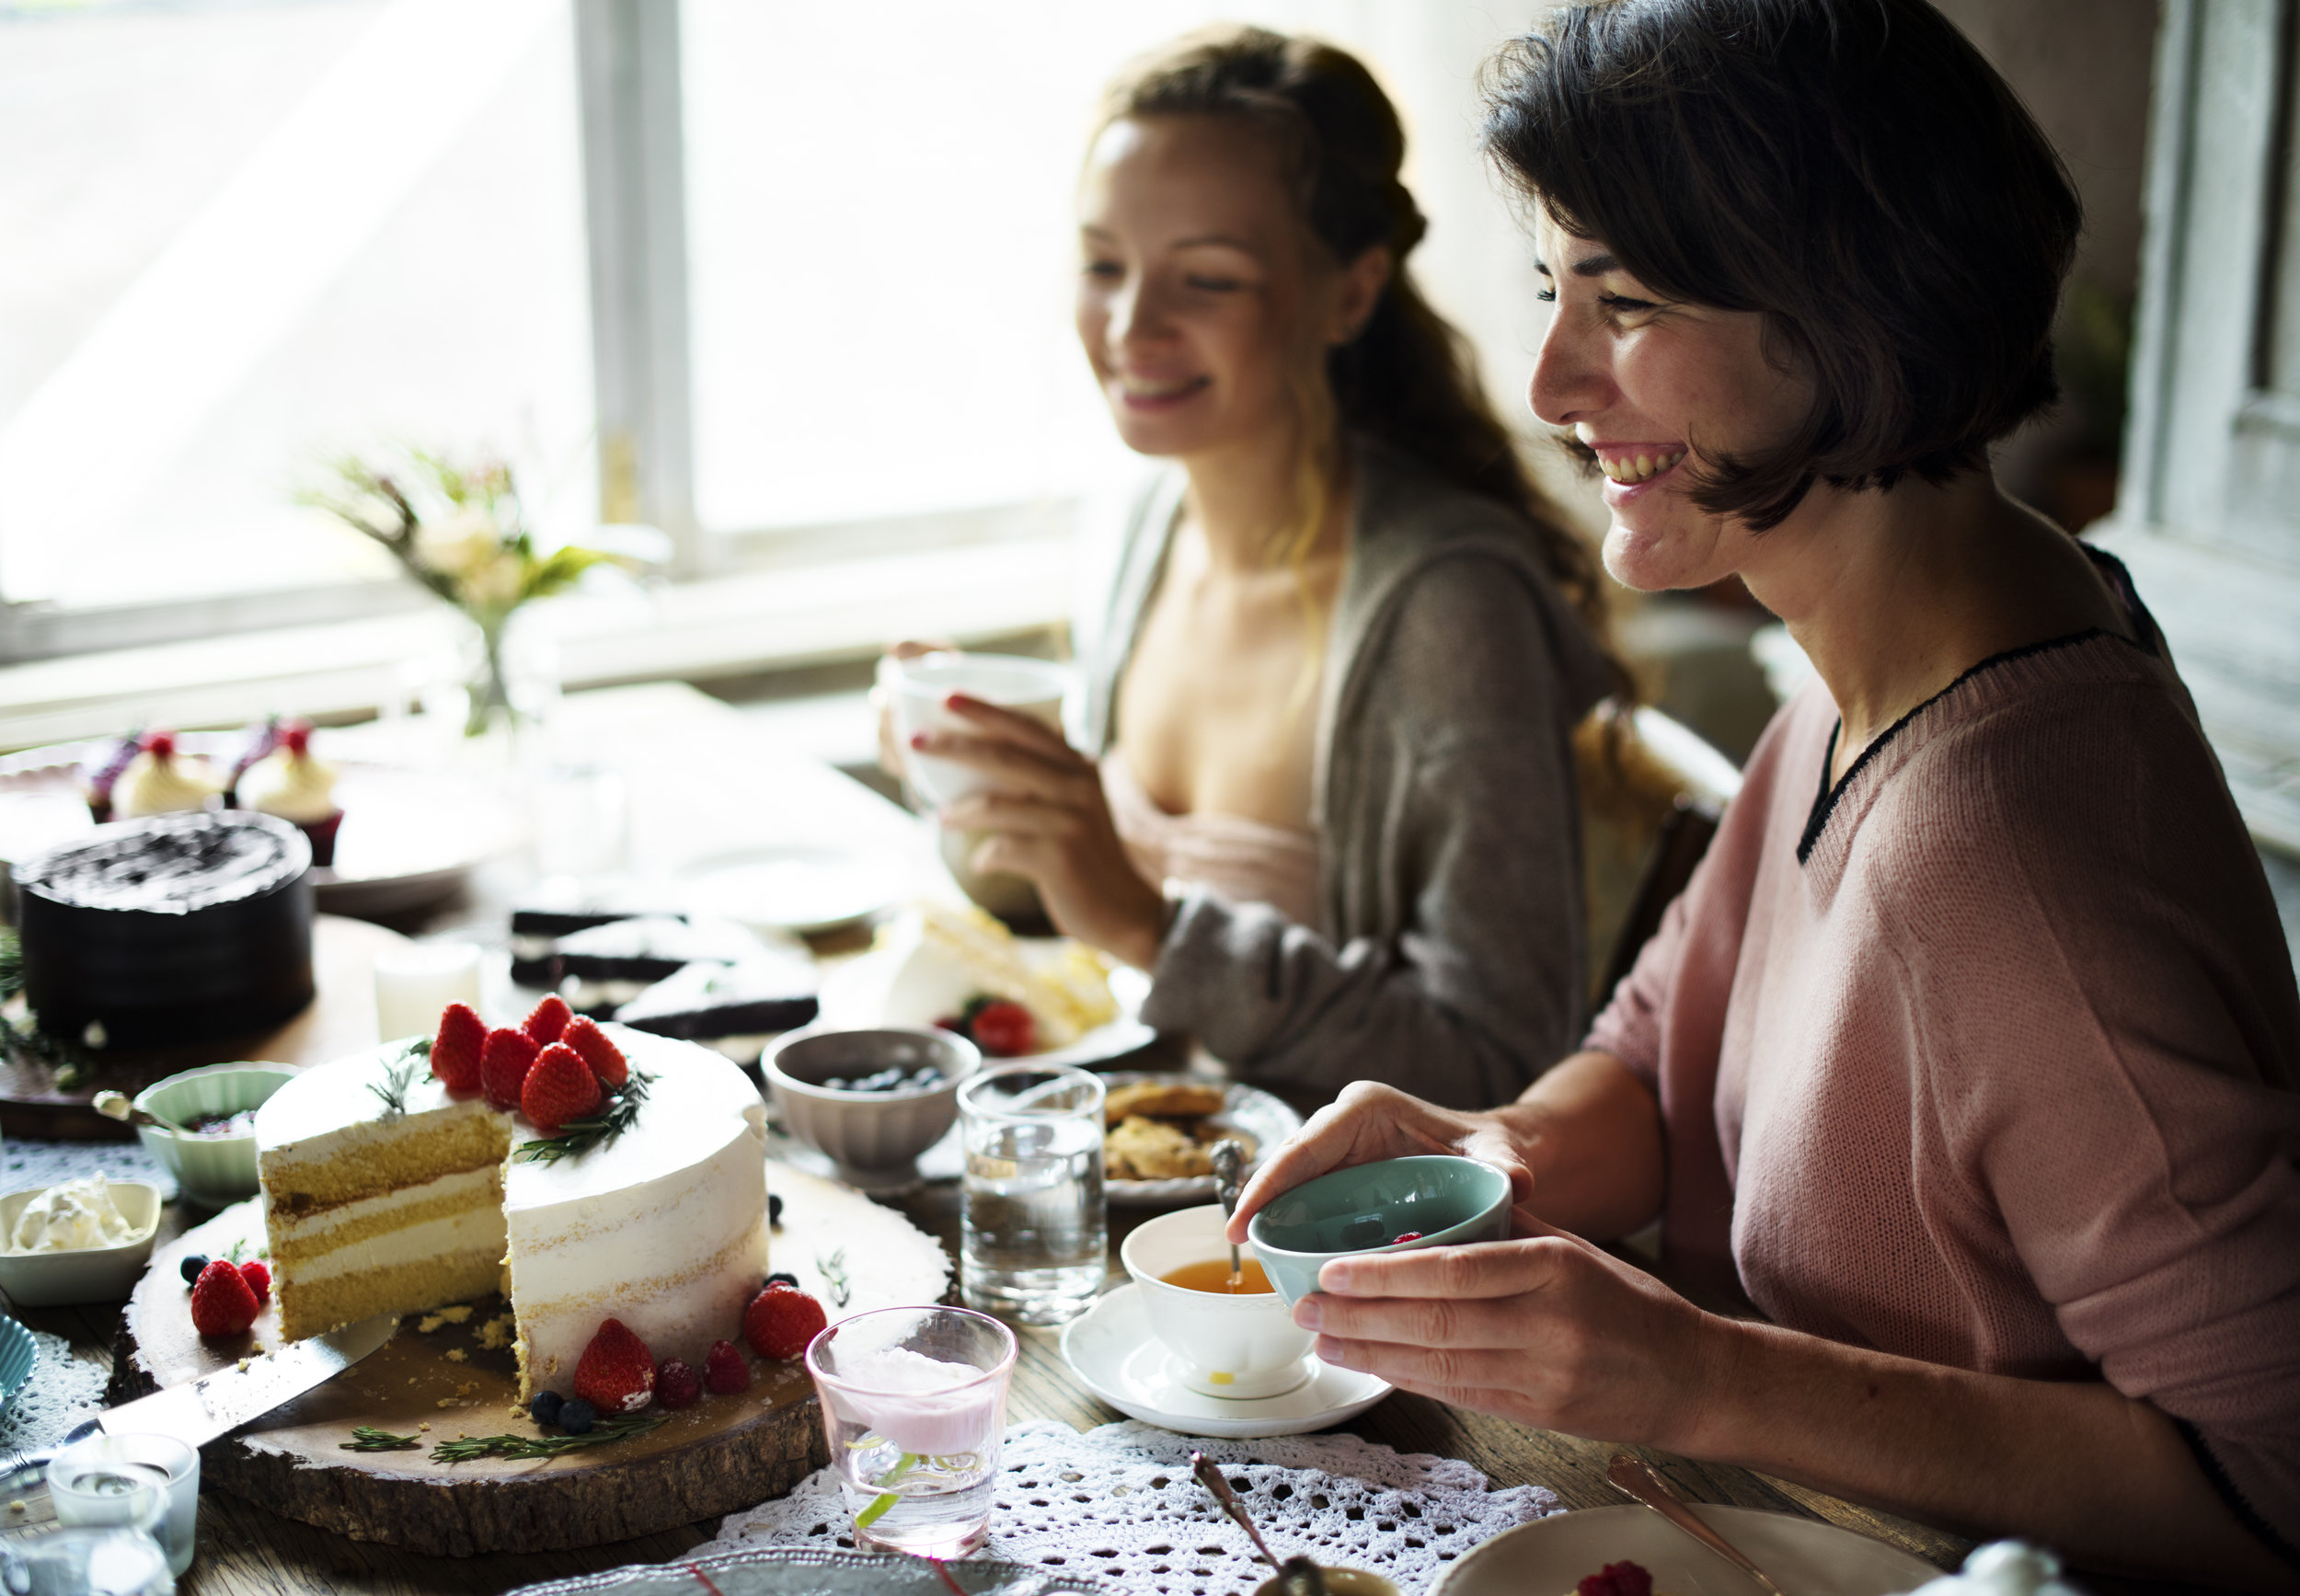 Two women drinking tea sitting at a table with cakes